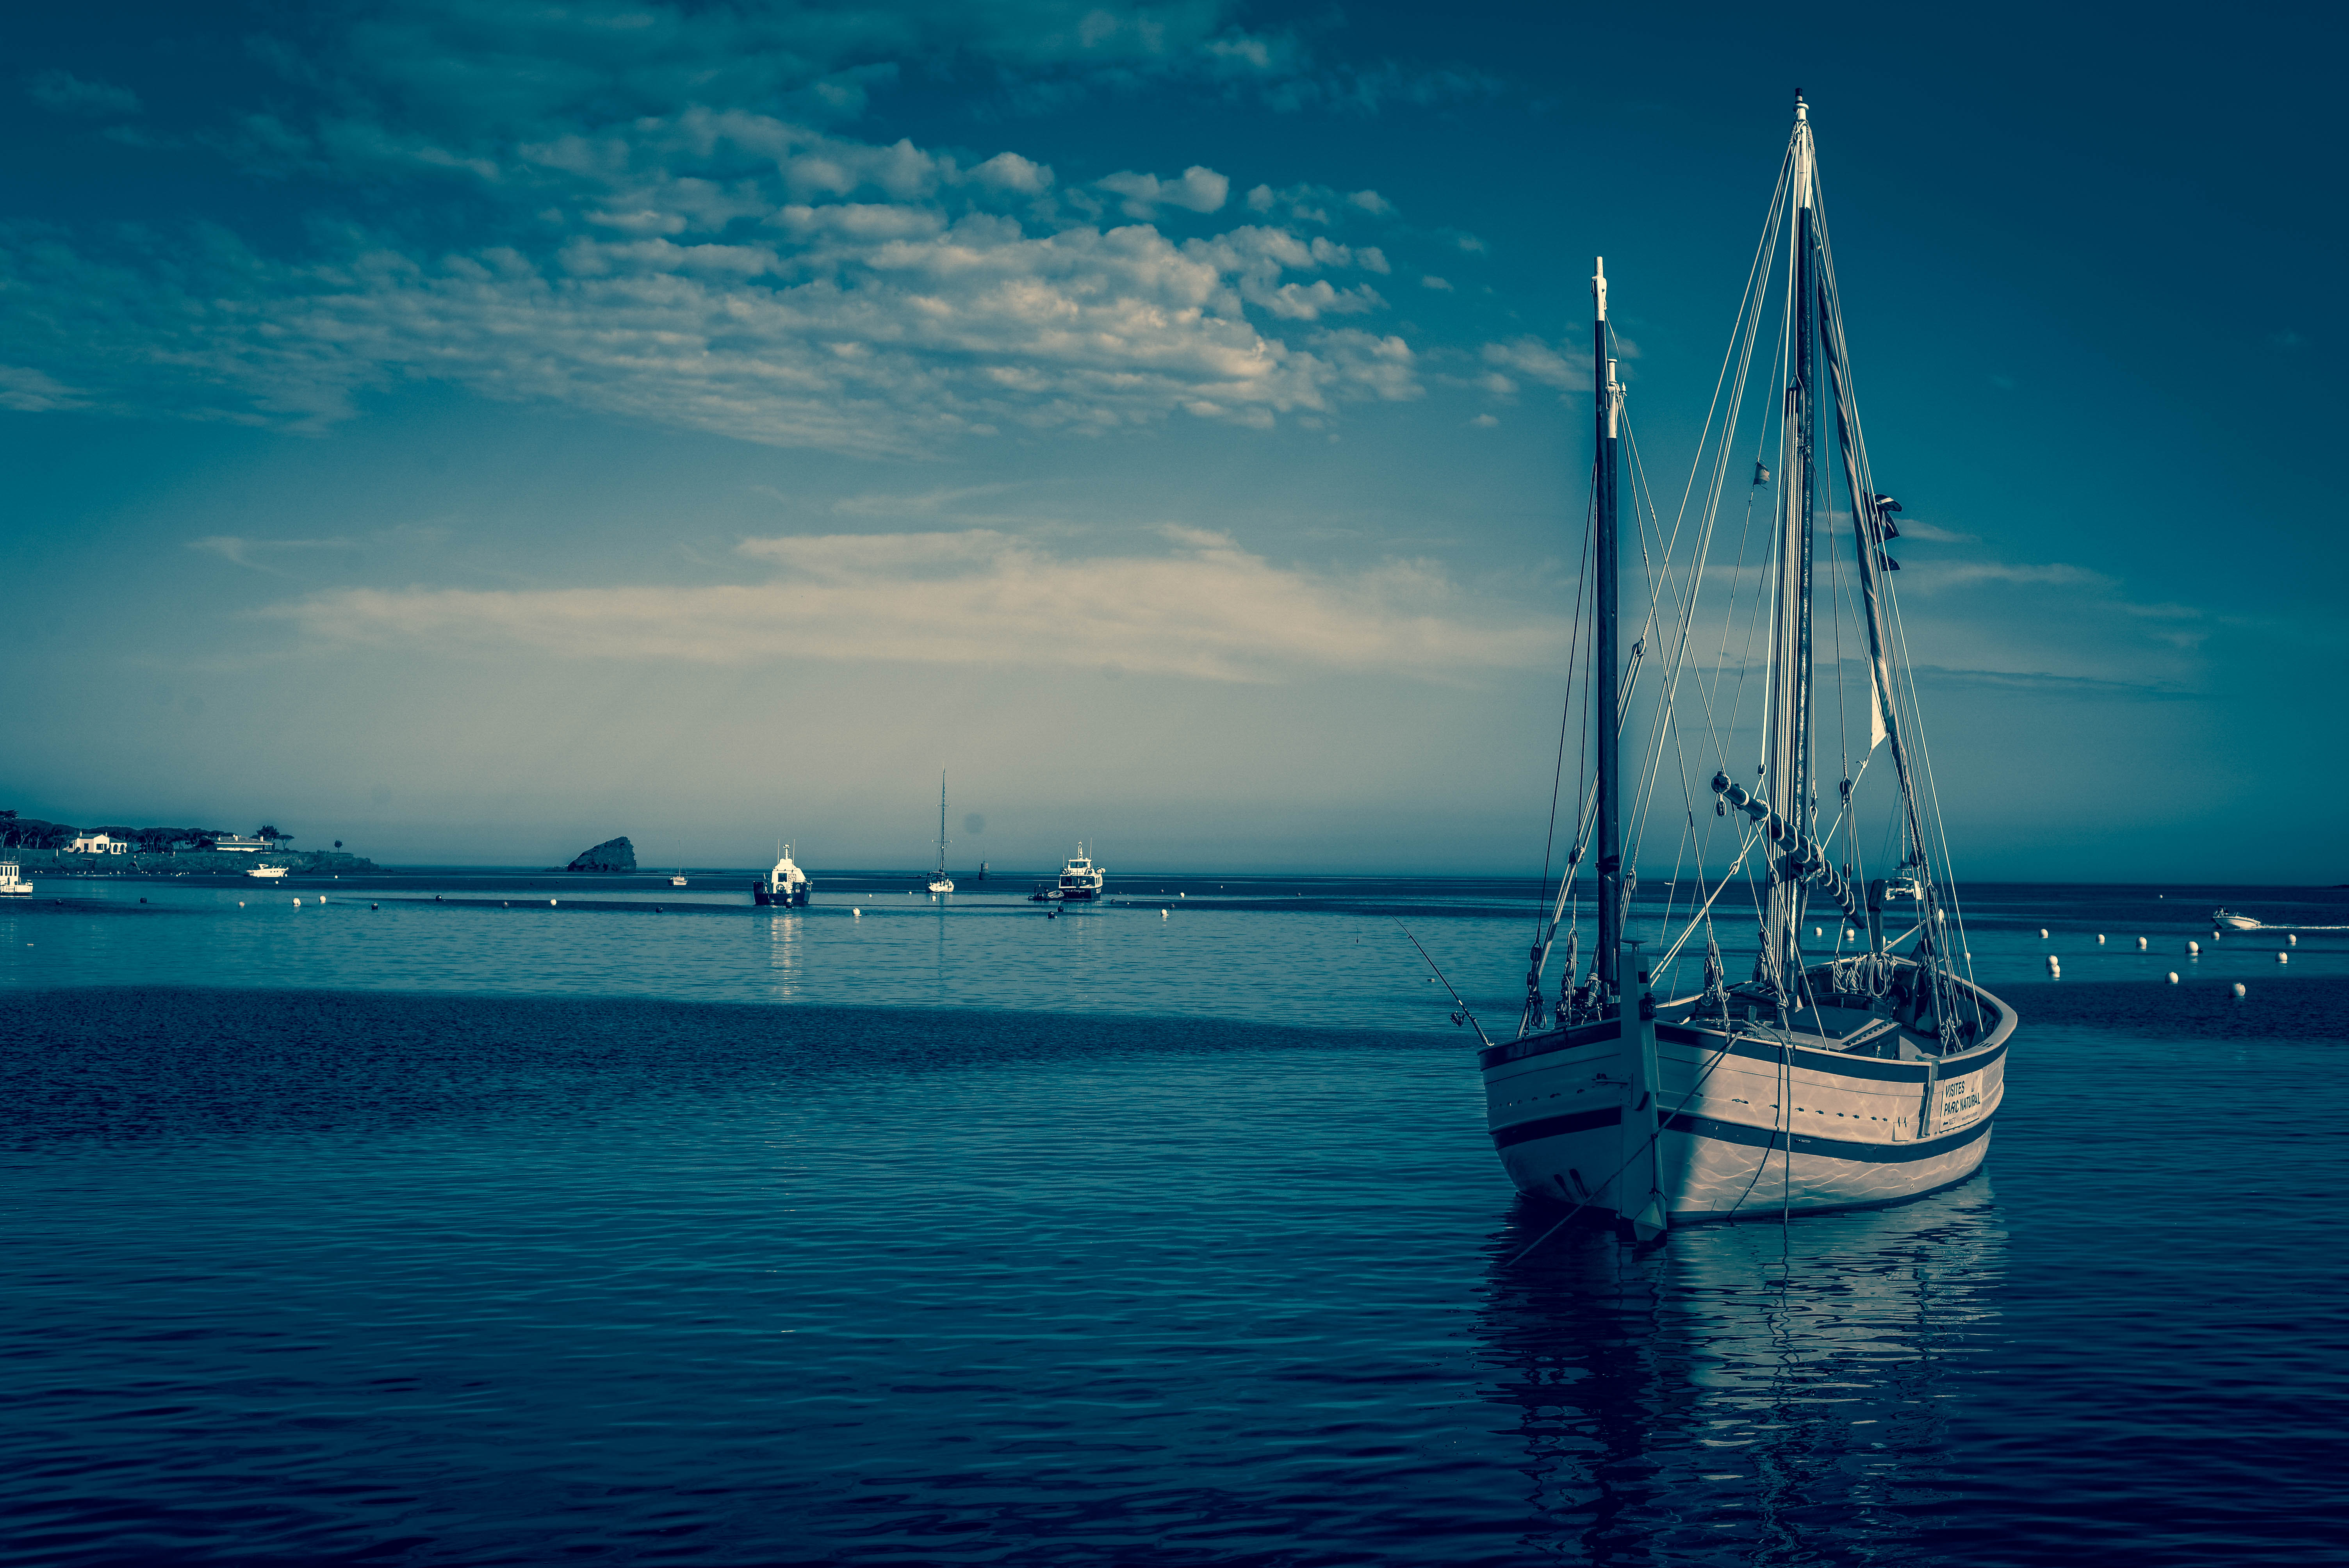 57748 download wallpaper Miscellanea, Miscellaneous, Boat, Harbor, Sea screensavers and pictures for free